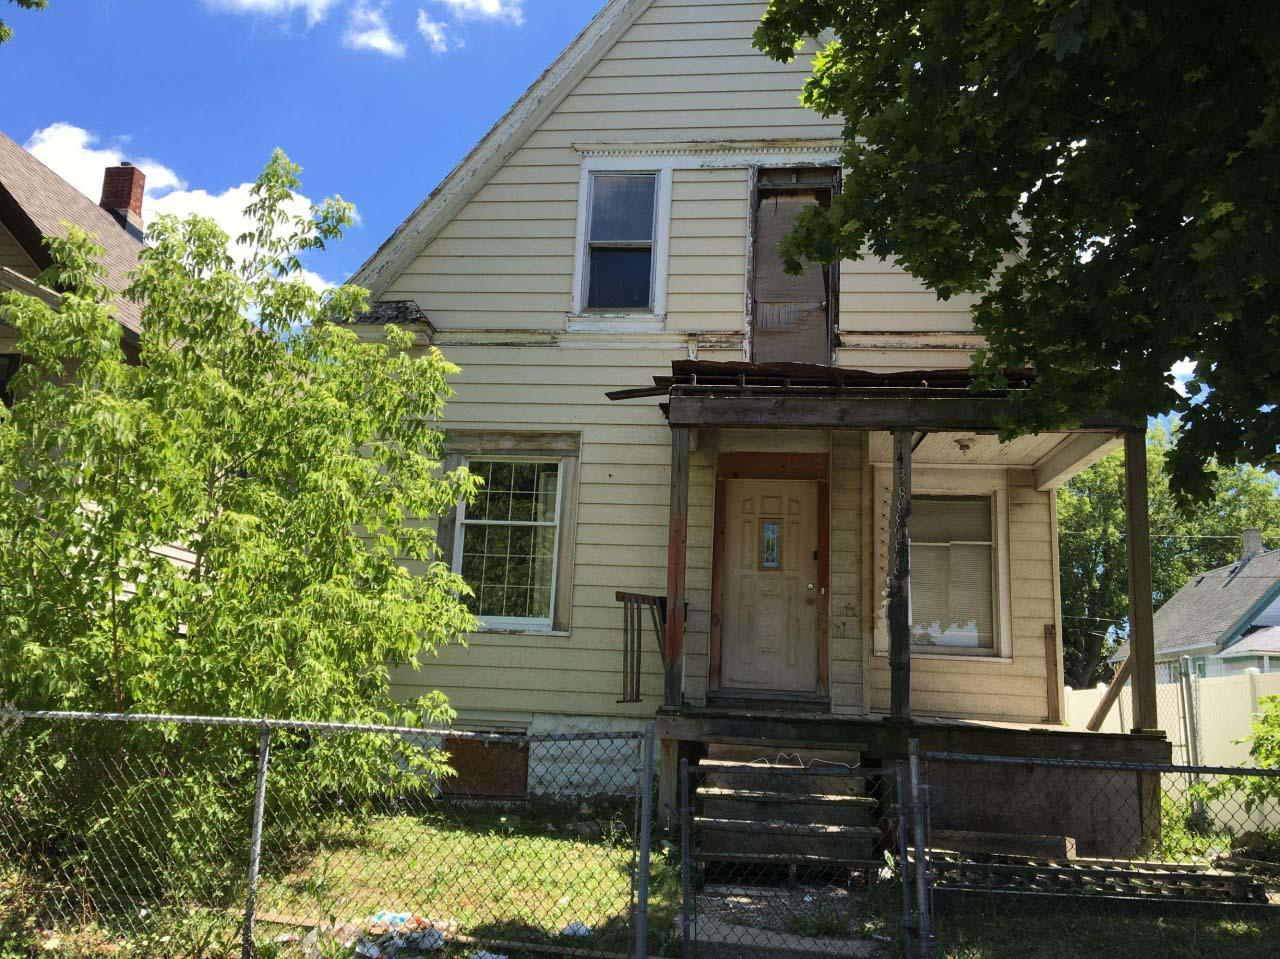 City of Milwaukee REO Tax Foreclosure Home being sold 'as-is'. Seller and its agents make no representations or warranties regarding the property. All building info (sq ft, age, room, sizes, etc) are from MLS, City Record or estimate. Buyer to verify everything. Please see attached documents for Milwaukee Home Buyer Program Assistance info for forgivable loans up to $20,000. Pre-approval or proof of funds are REQUIRED with all offers. See attached scope of work for this property.